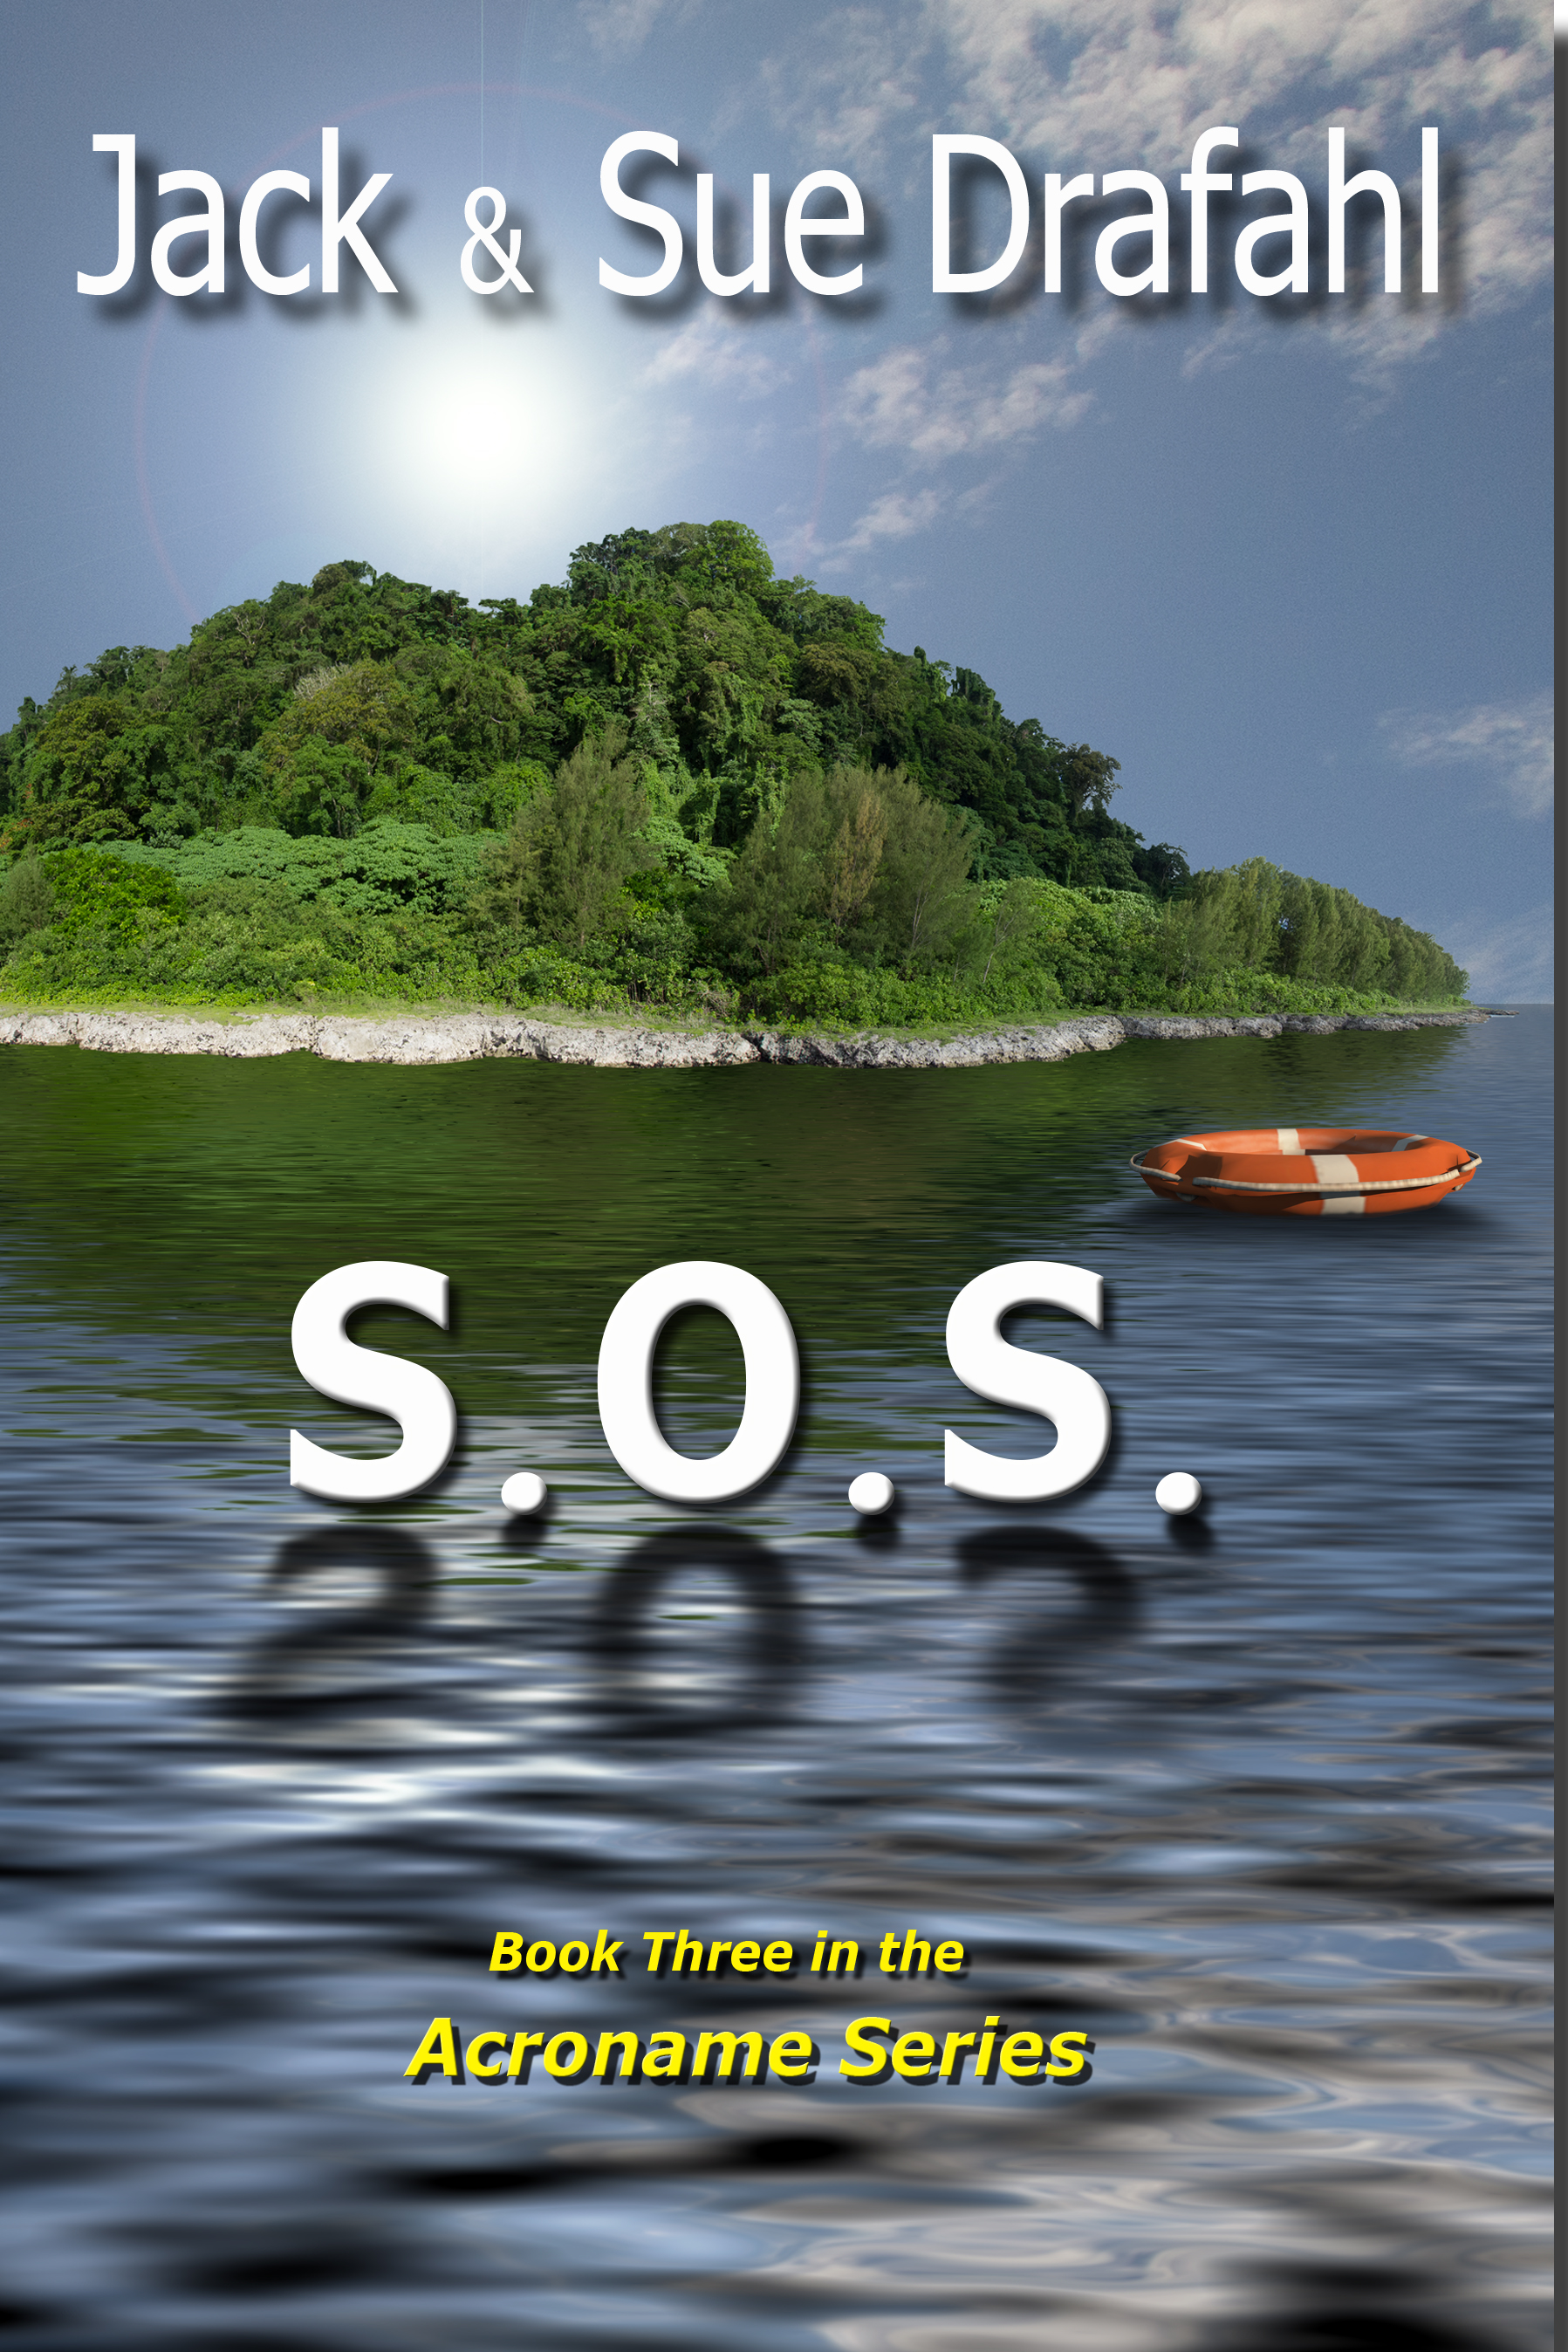 S.O.S. (Acroname Series Book 3)